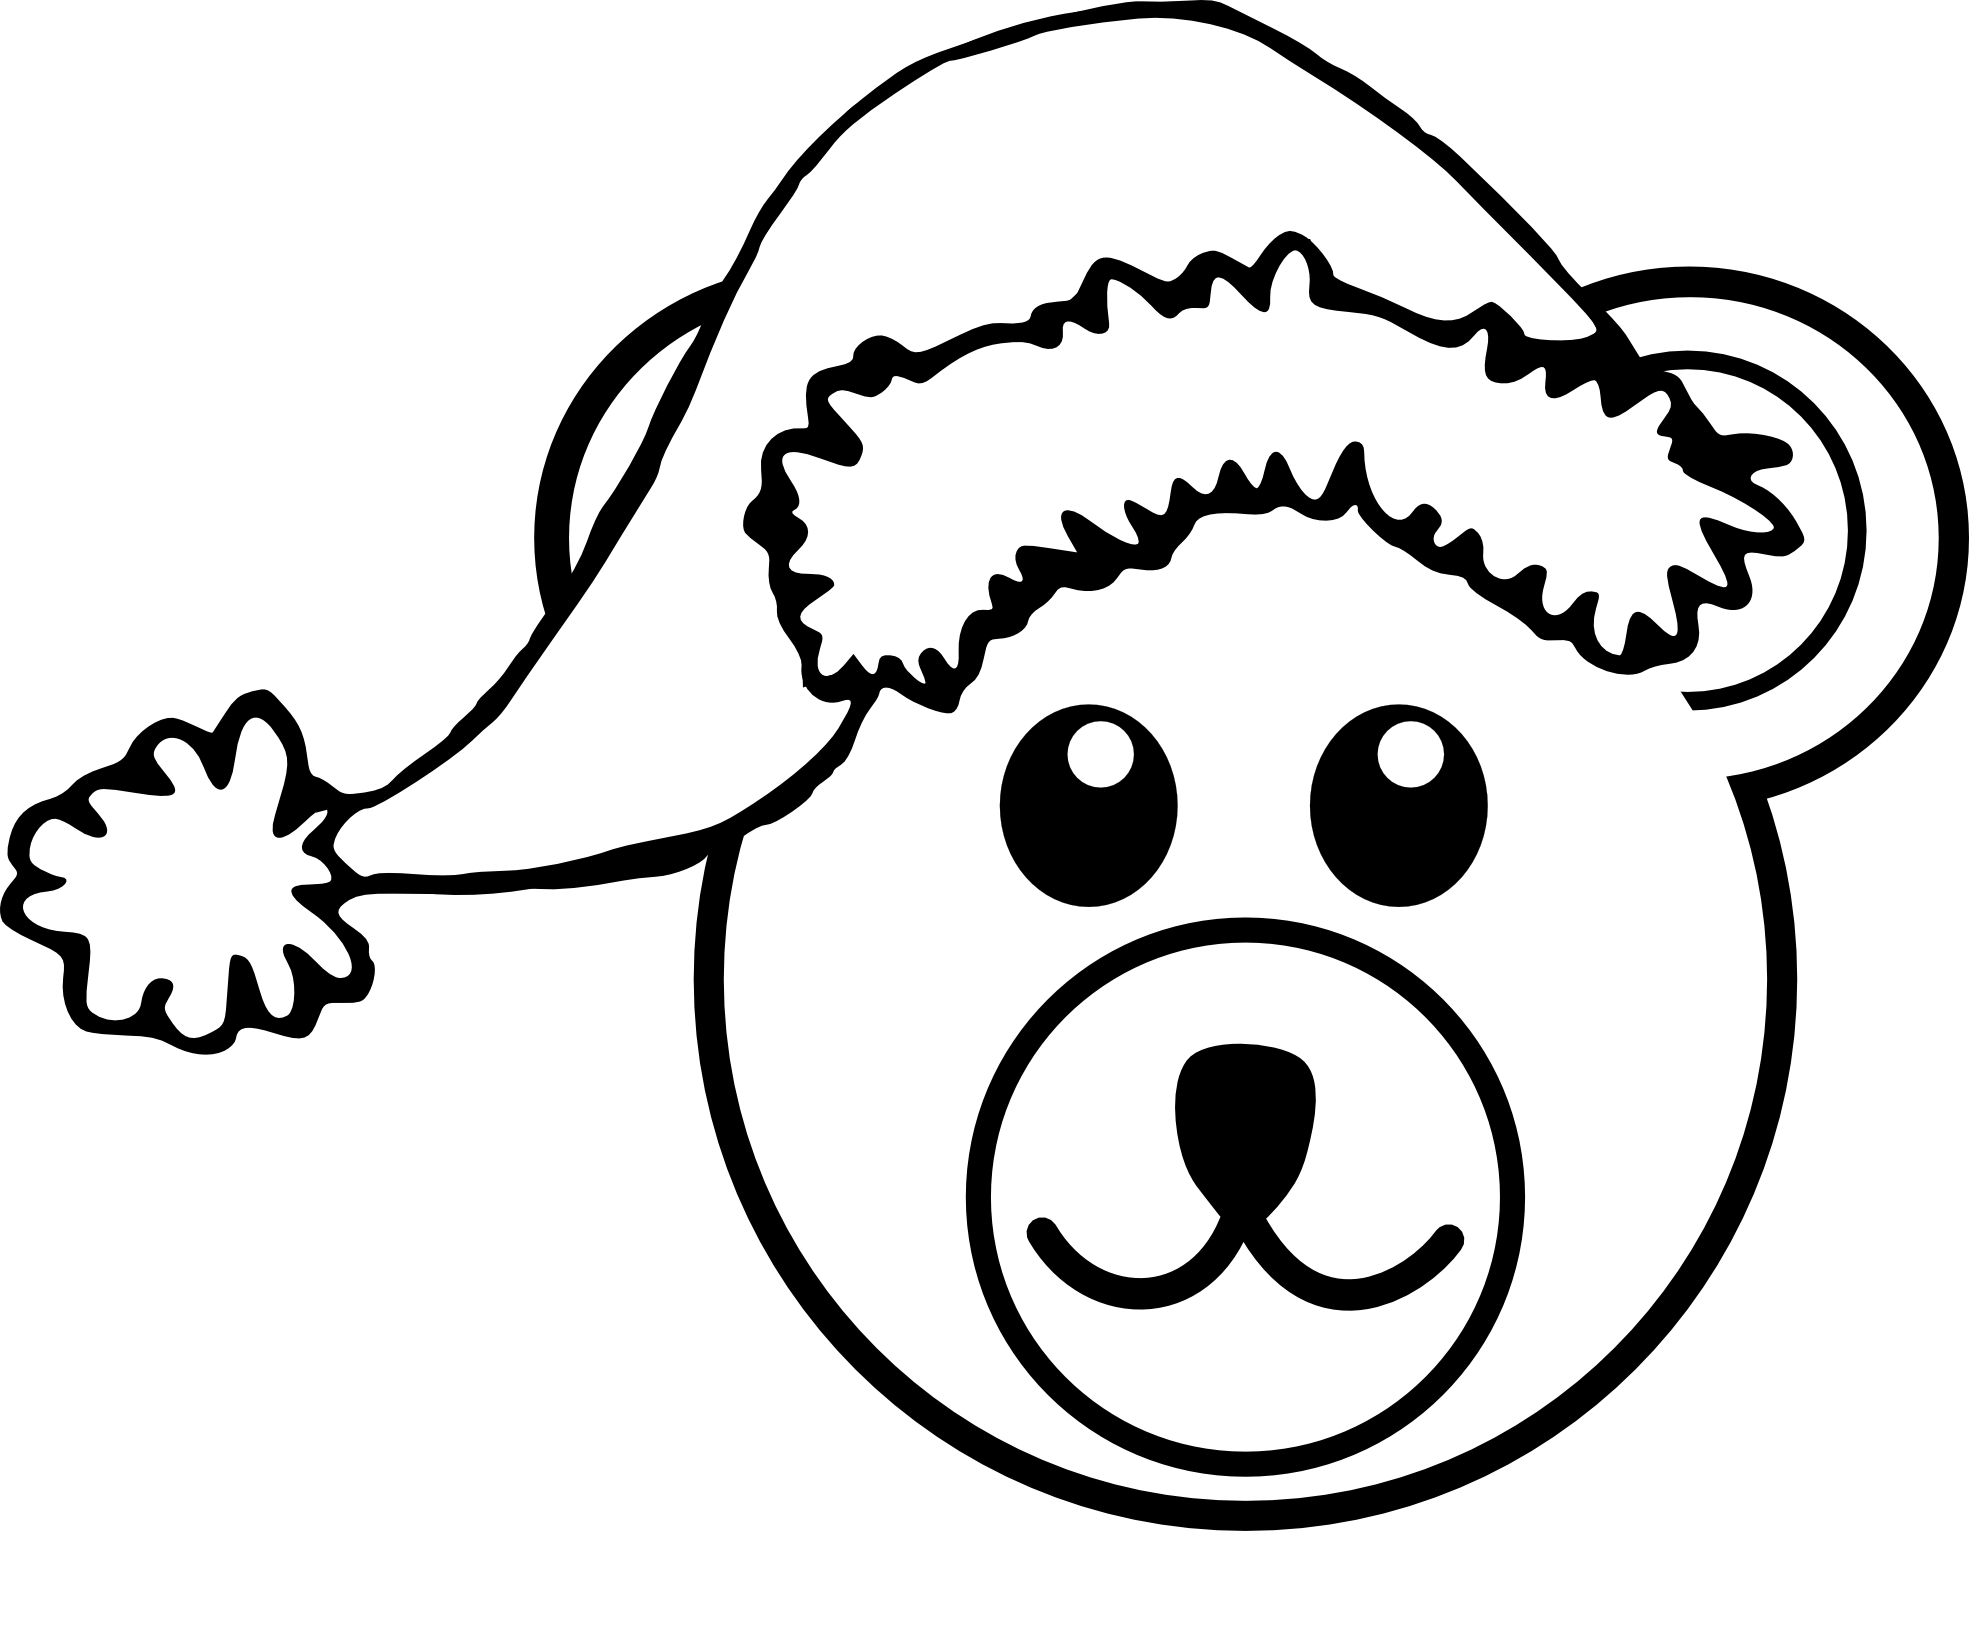 Pirate Hat Drawing at GetDrawings.com | Free for personal use Pirate ...